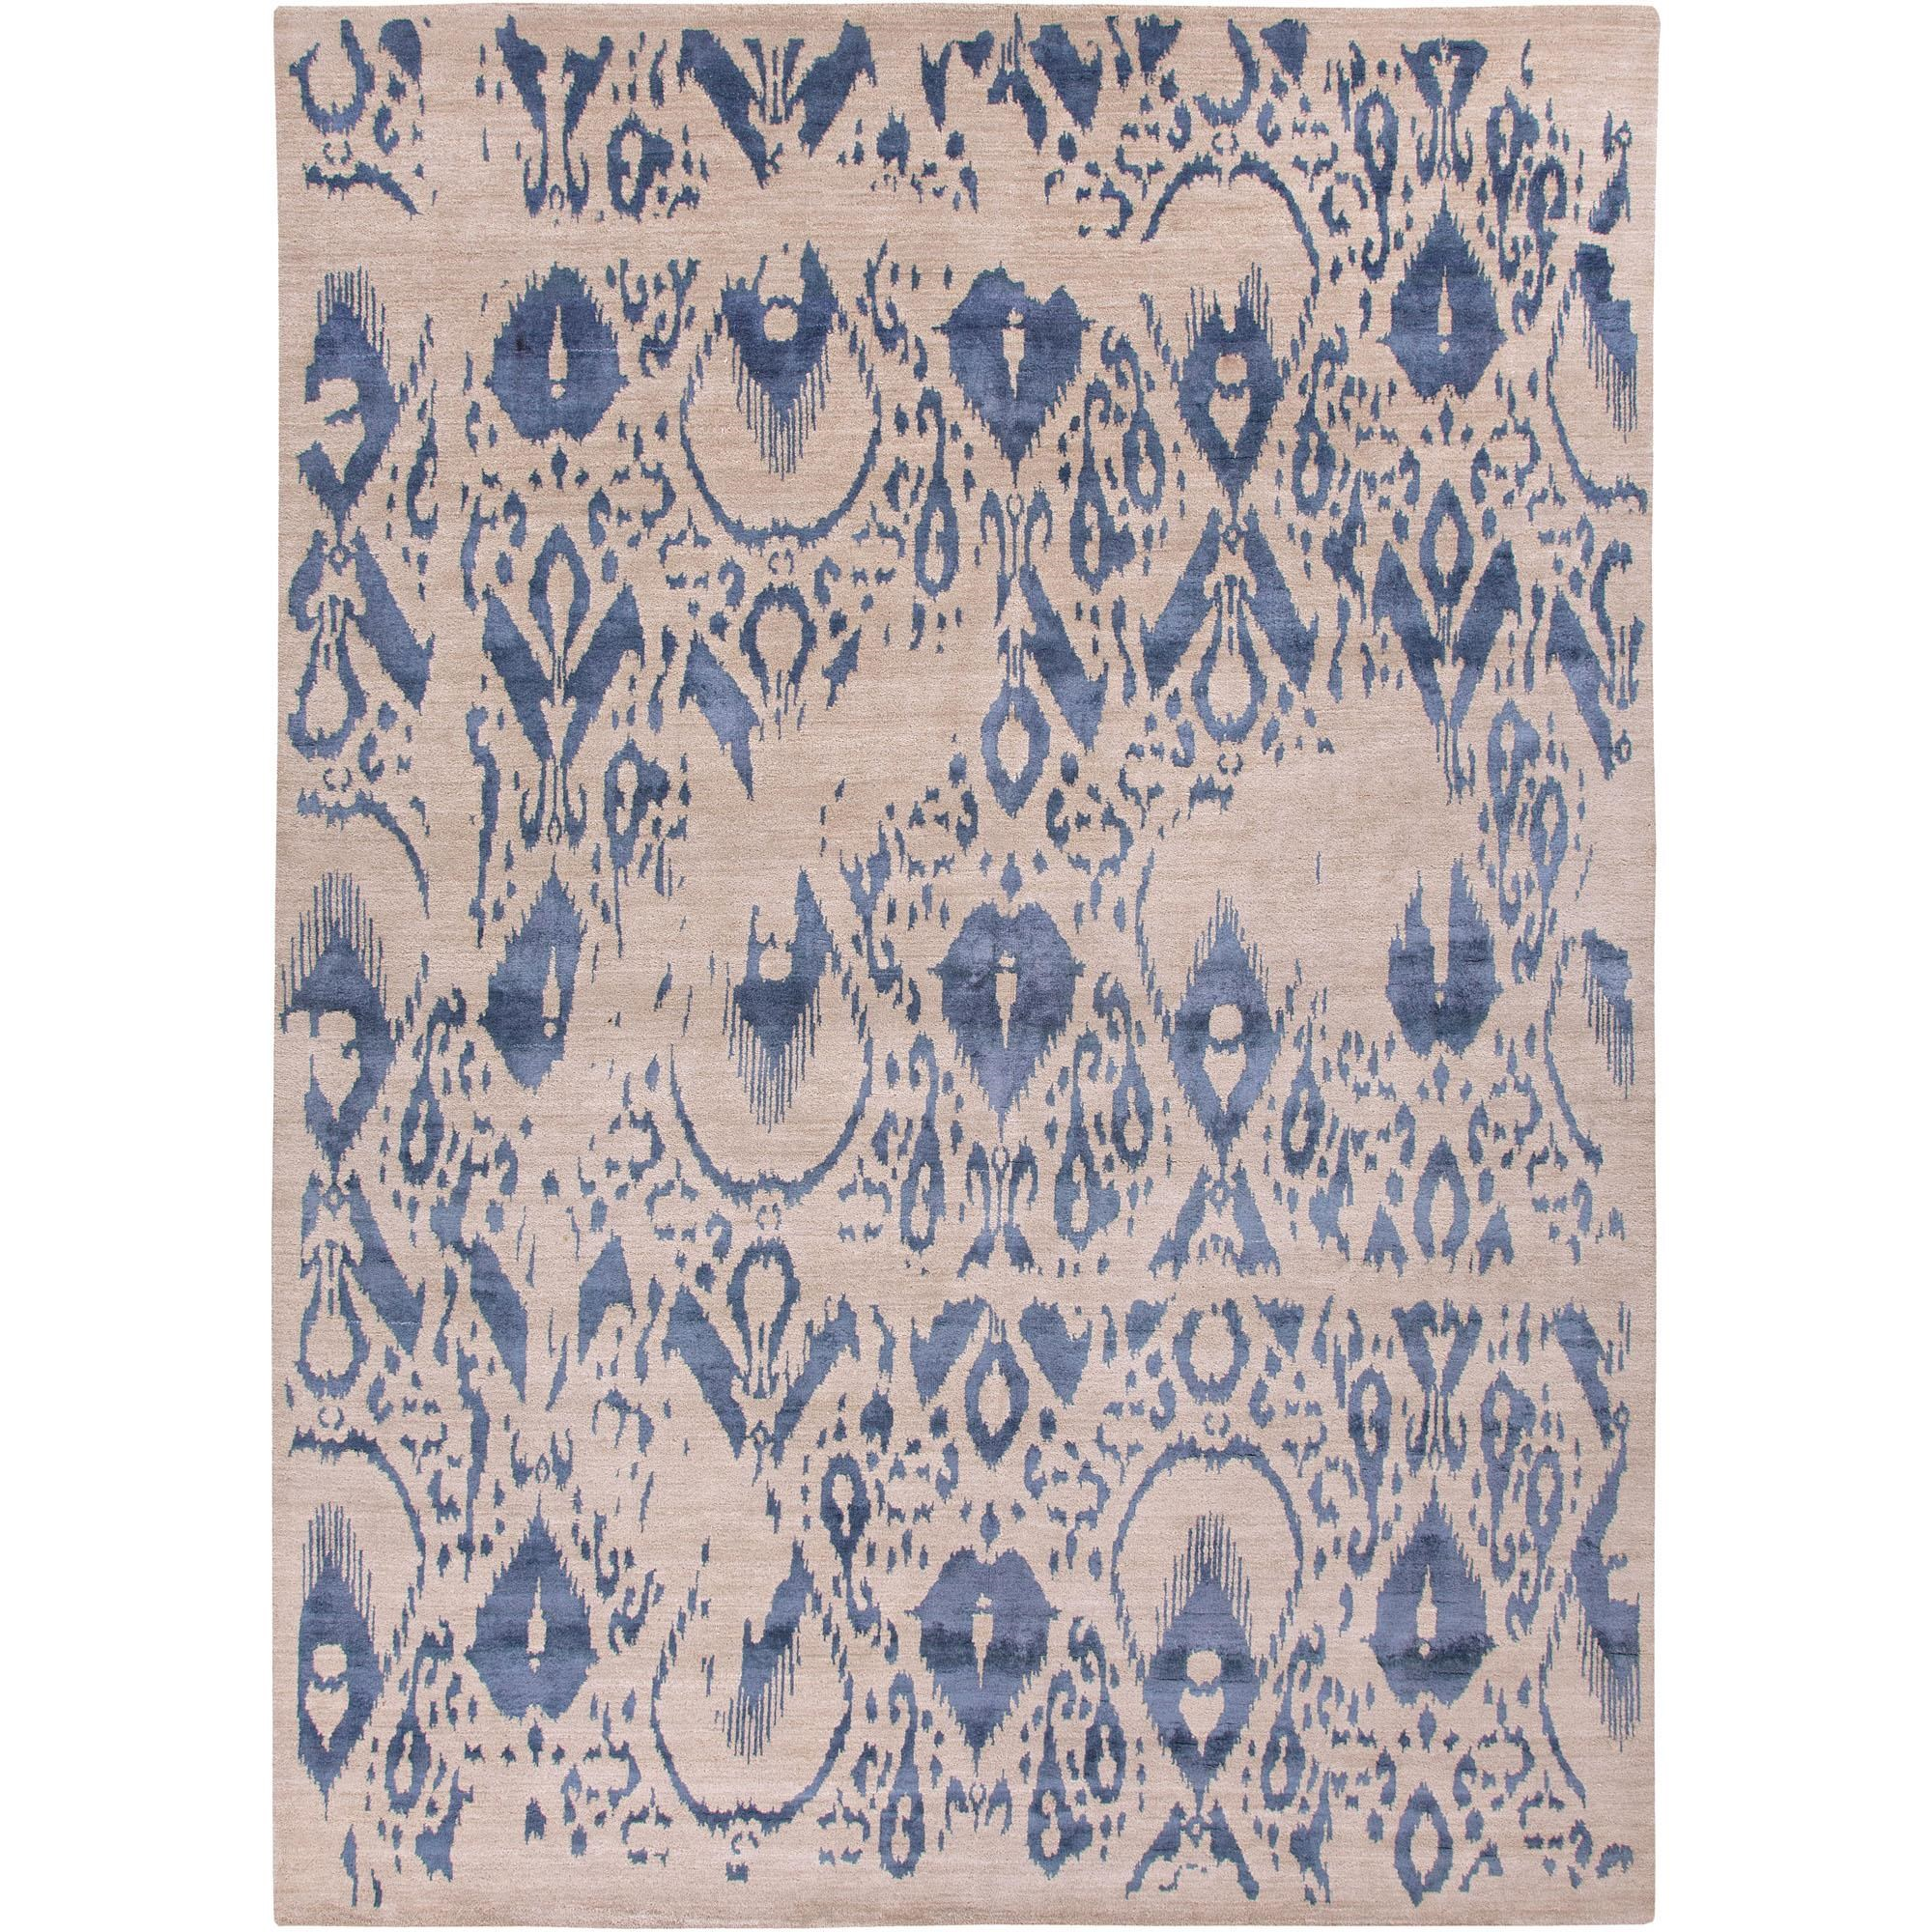 10 by 12 rug. JAIPUR Rugs Connextion By Jenny Jones-global9 X 12 Rug 10